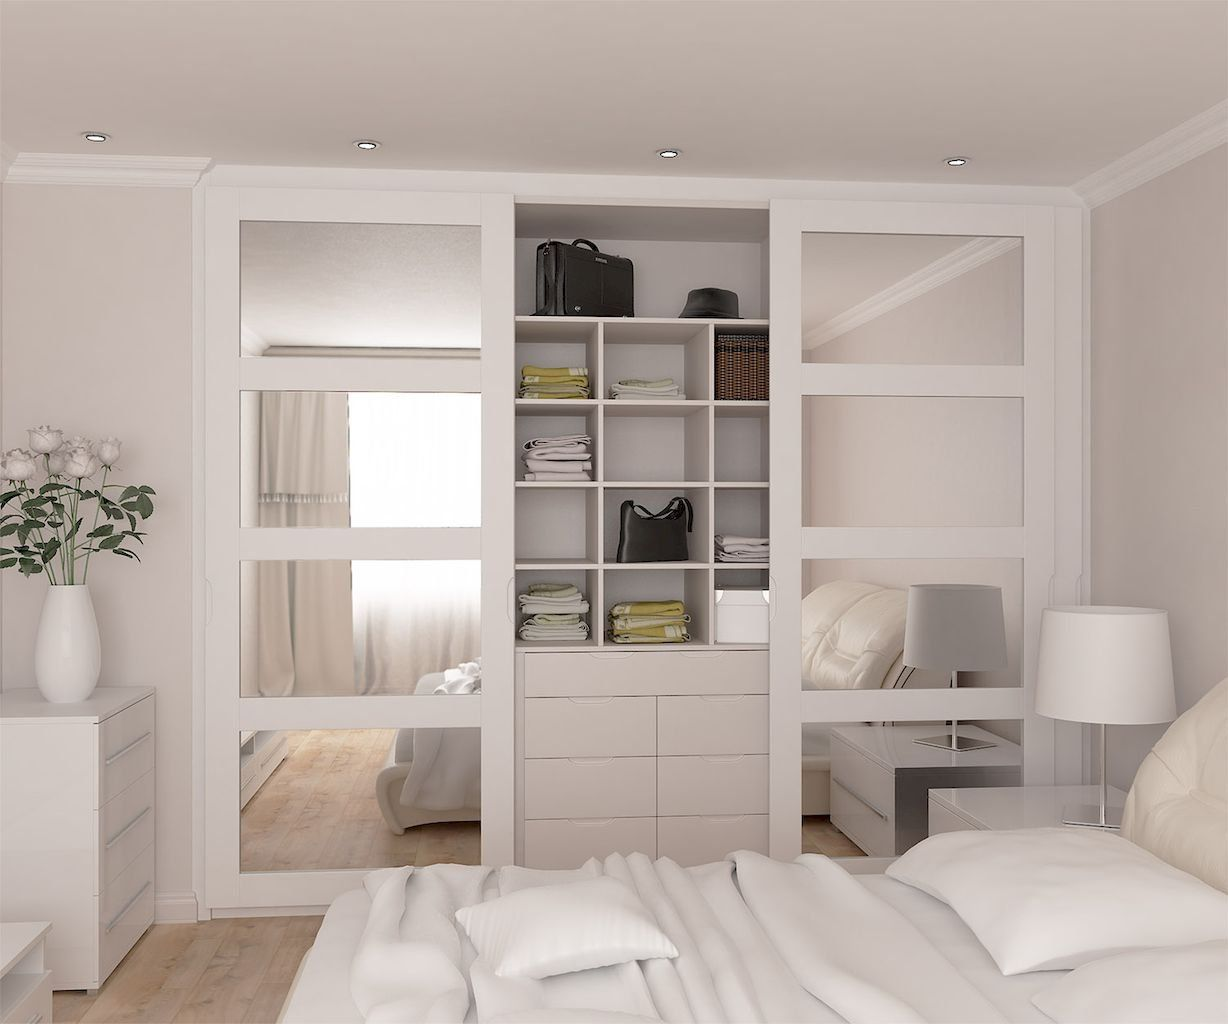 120 Brilliant Wardrobe Ideas For First Apartment Bedroom Decor 95